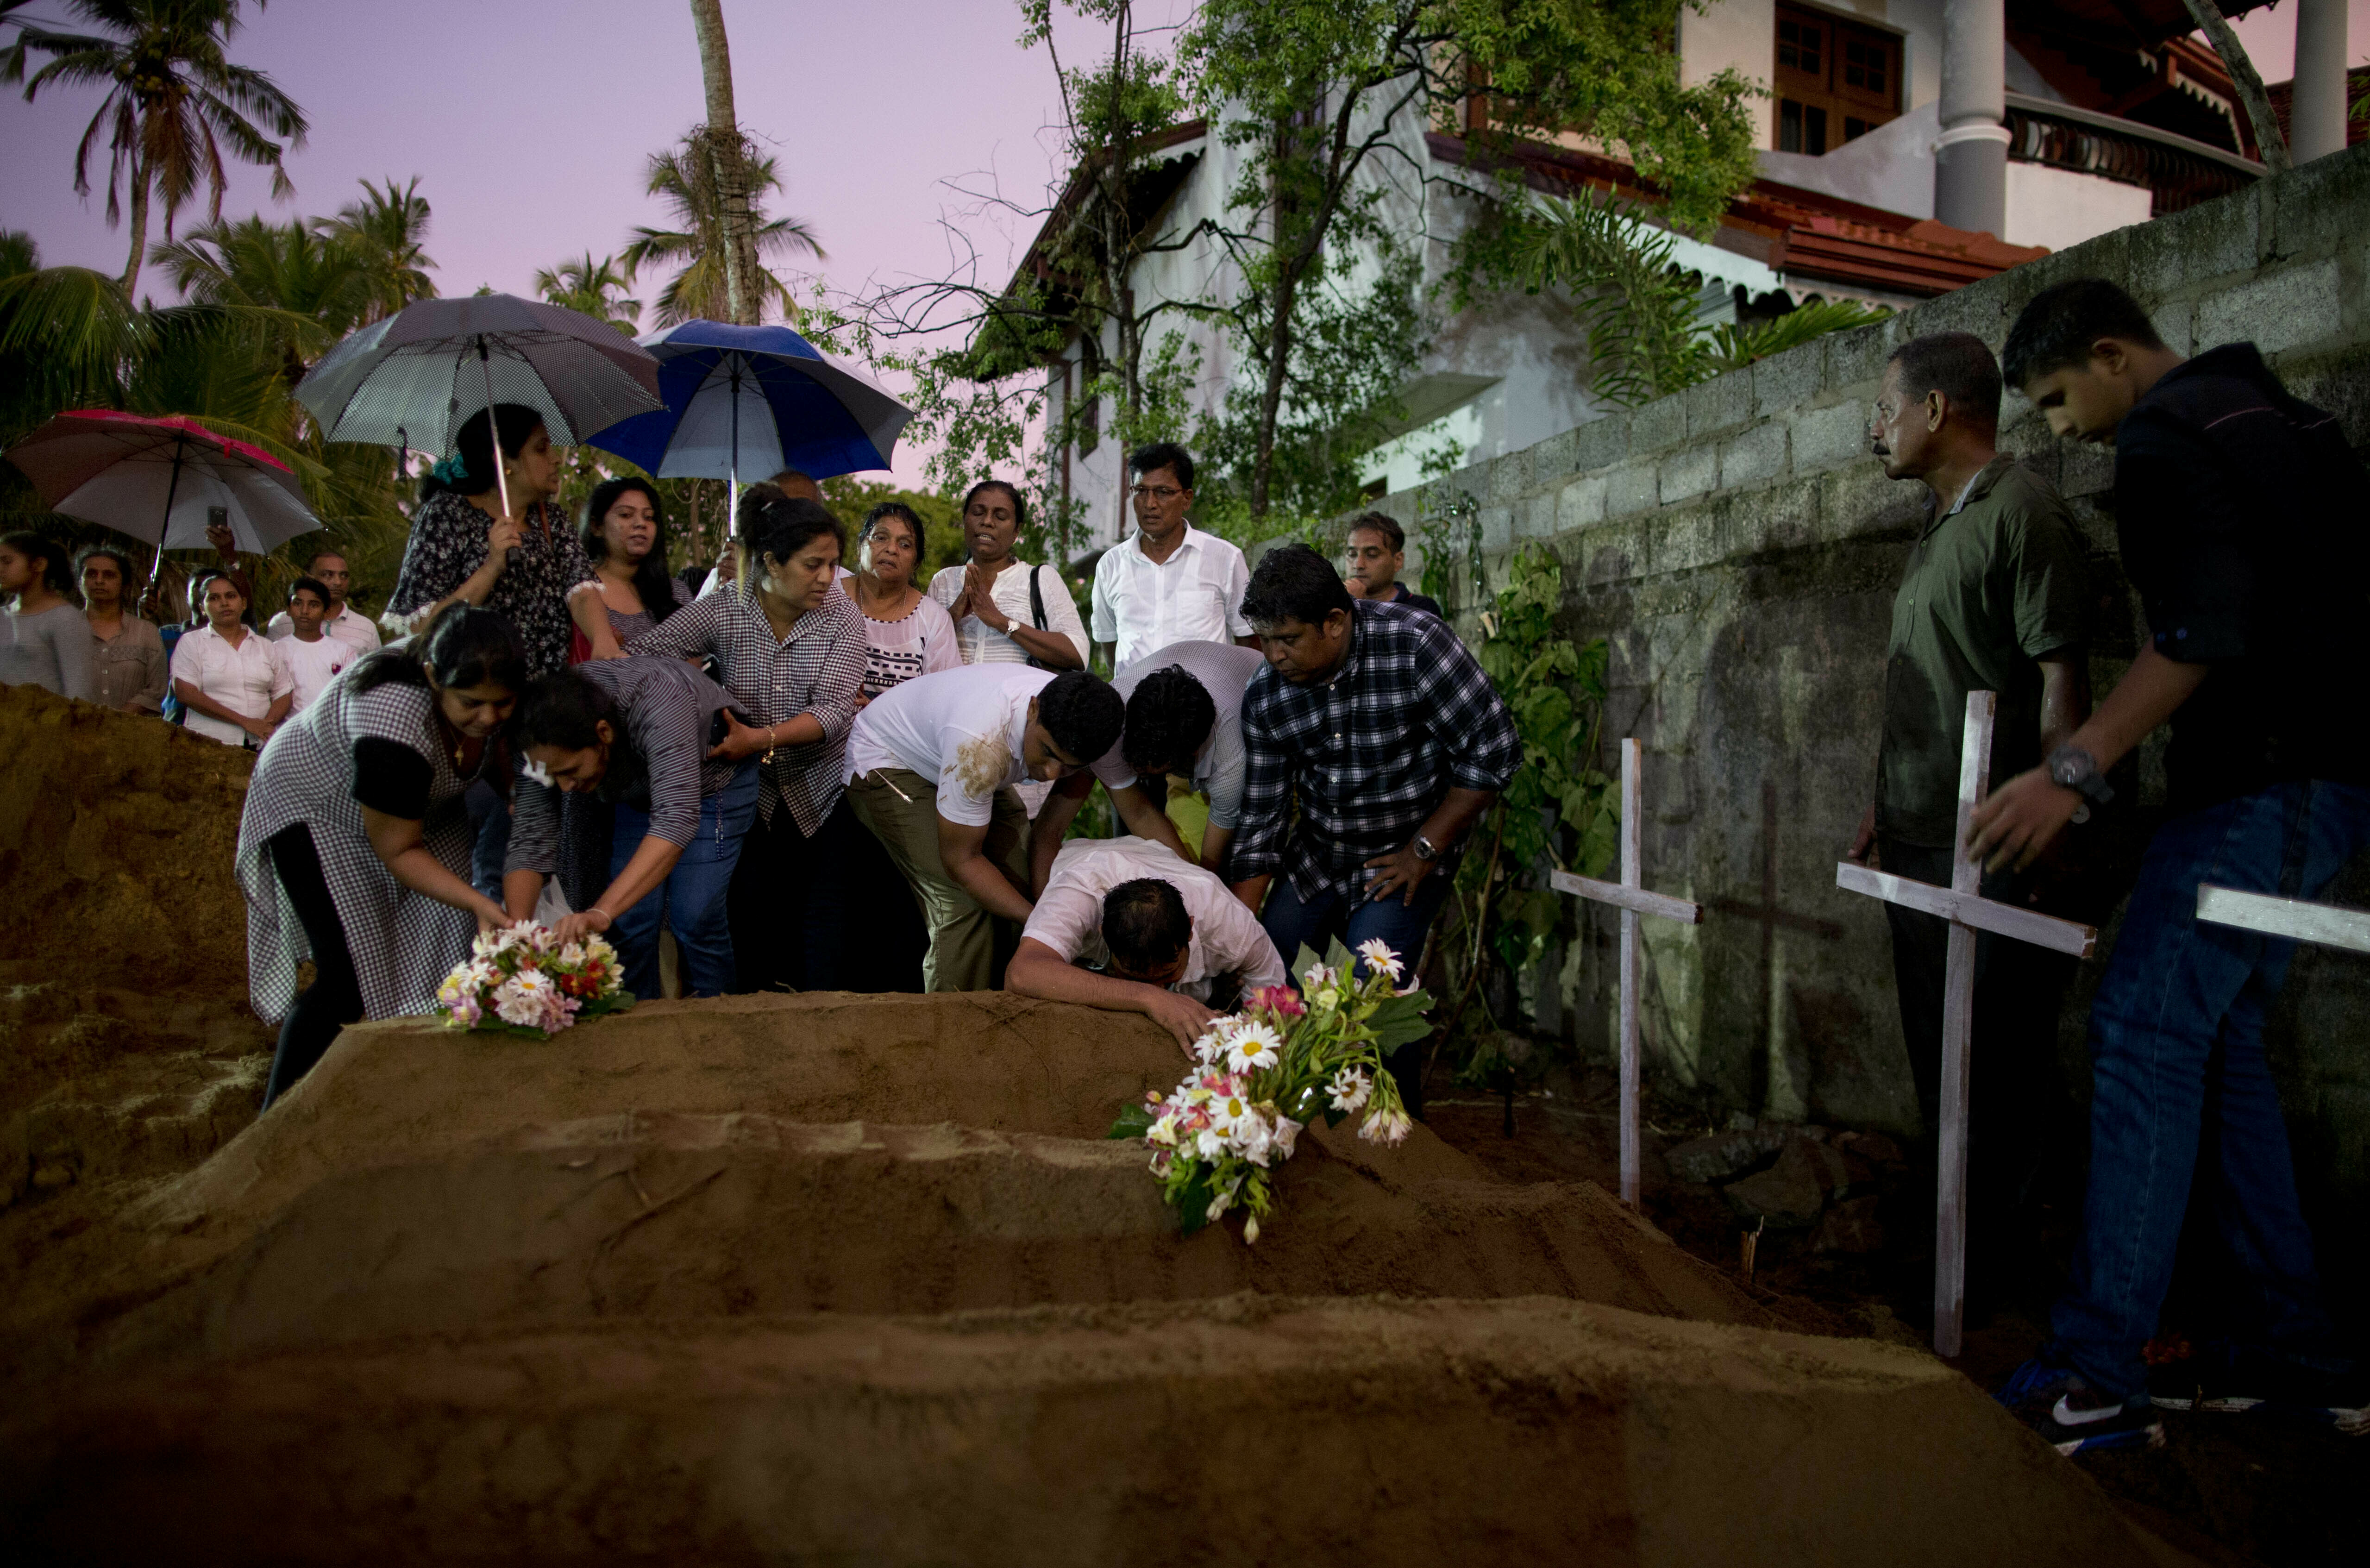 Relatives place flowers after the burial of three victims of the same family, who died at Easter Sunday bomb blast at St. Sebastian Church in Negombo, Sri Lanka, Monday, April 22, 2019. The State Department has confirmed that at least four Americans died in Sunday's attacks.